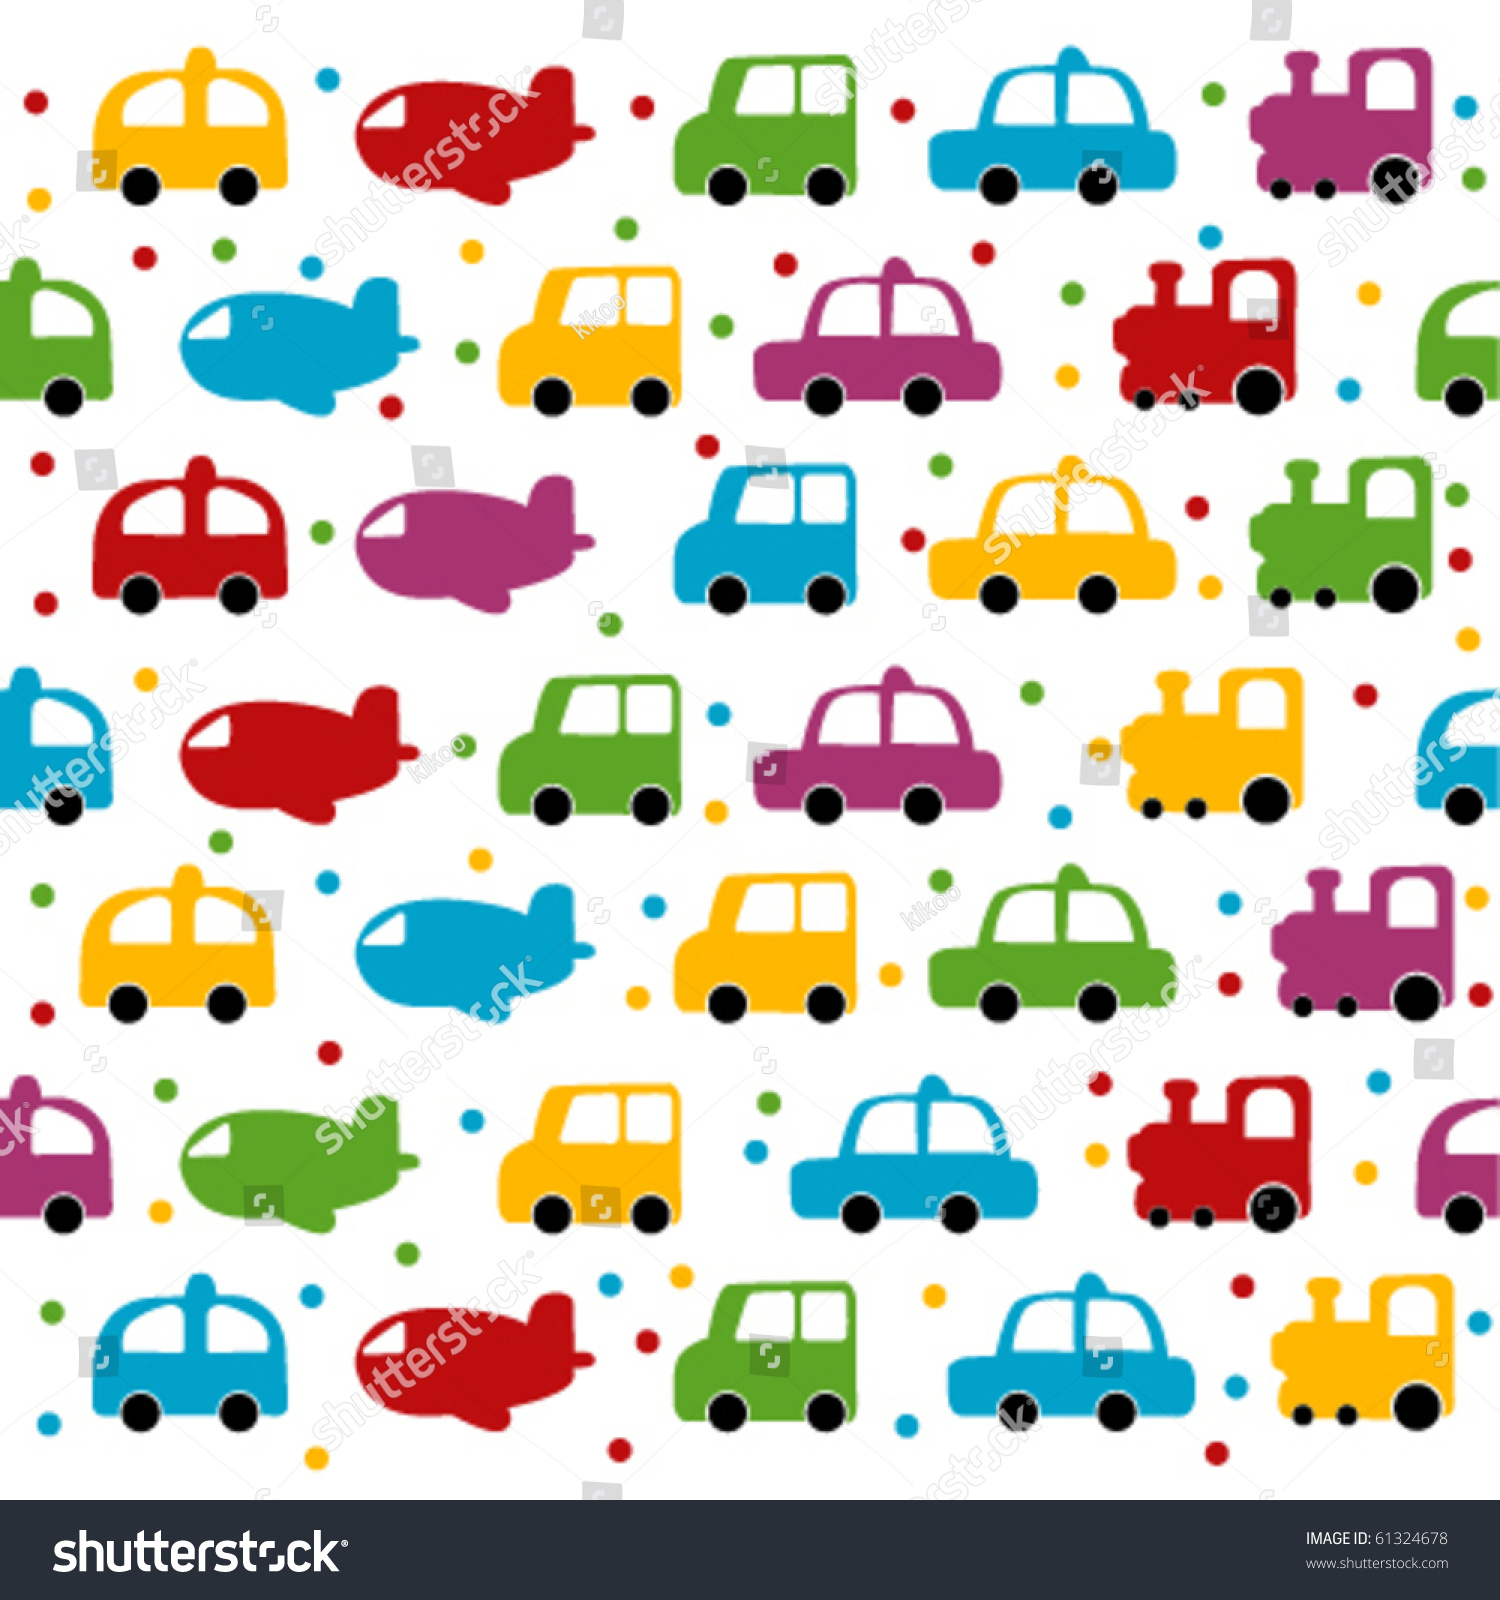 Boy Toys Background : Seamless toy car and plane background for baby boy stock